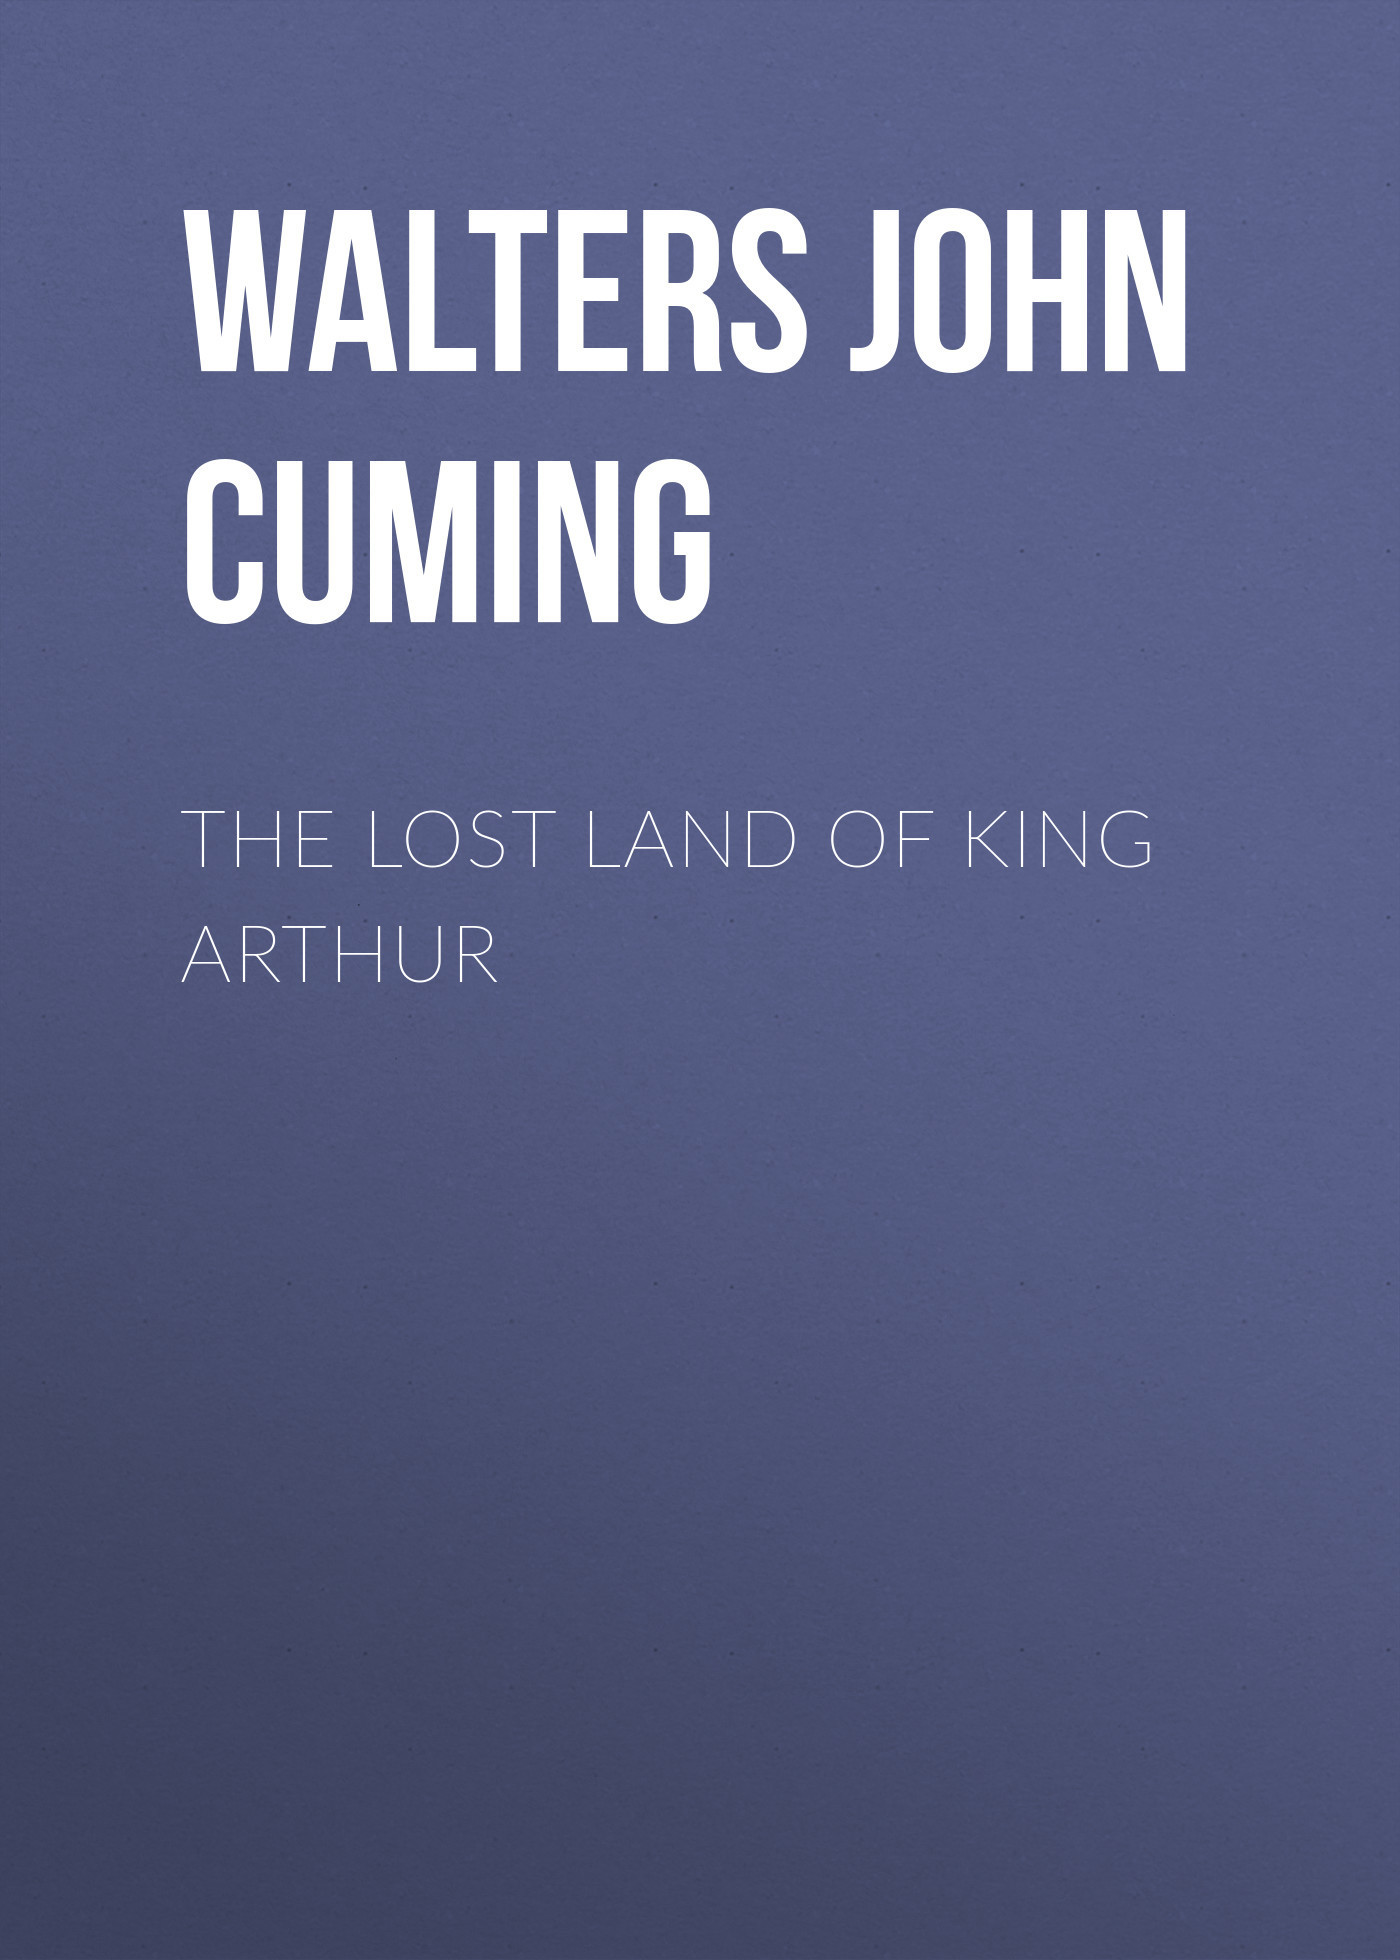 Walters John Cuming The Lost Land of King Arthur the lost king